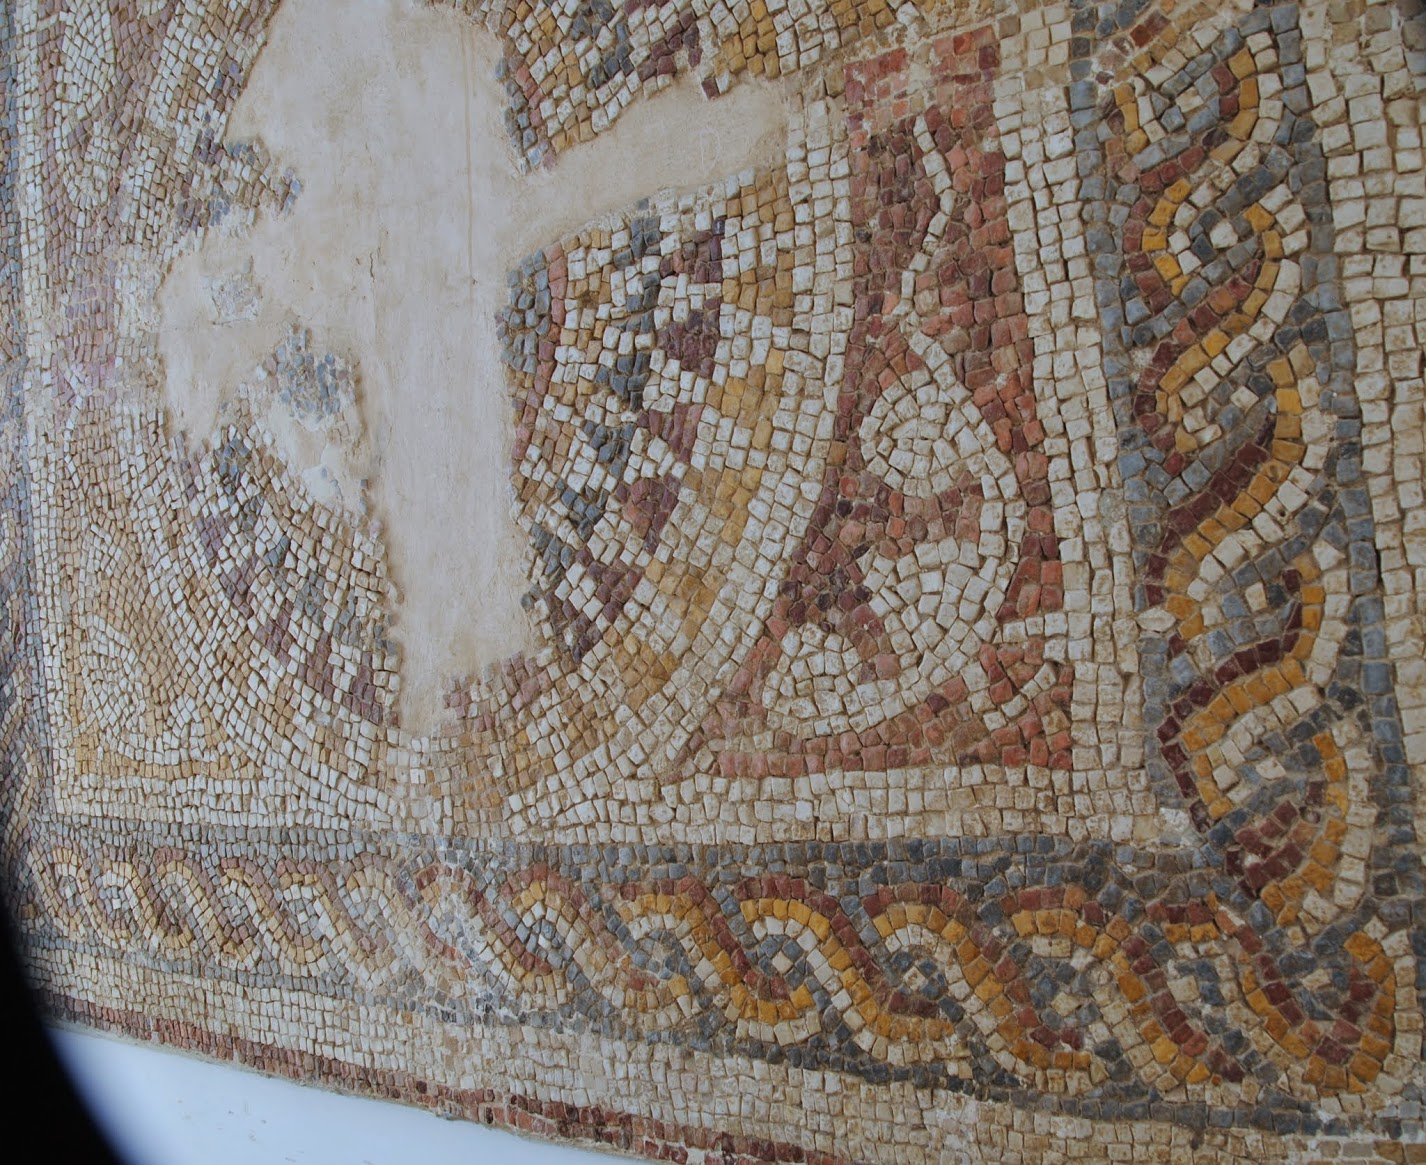 My Photos: Jordan -- Mosaics -- The Citadel